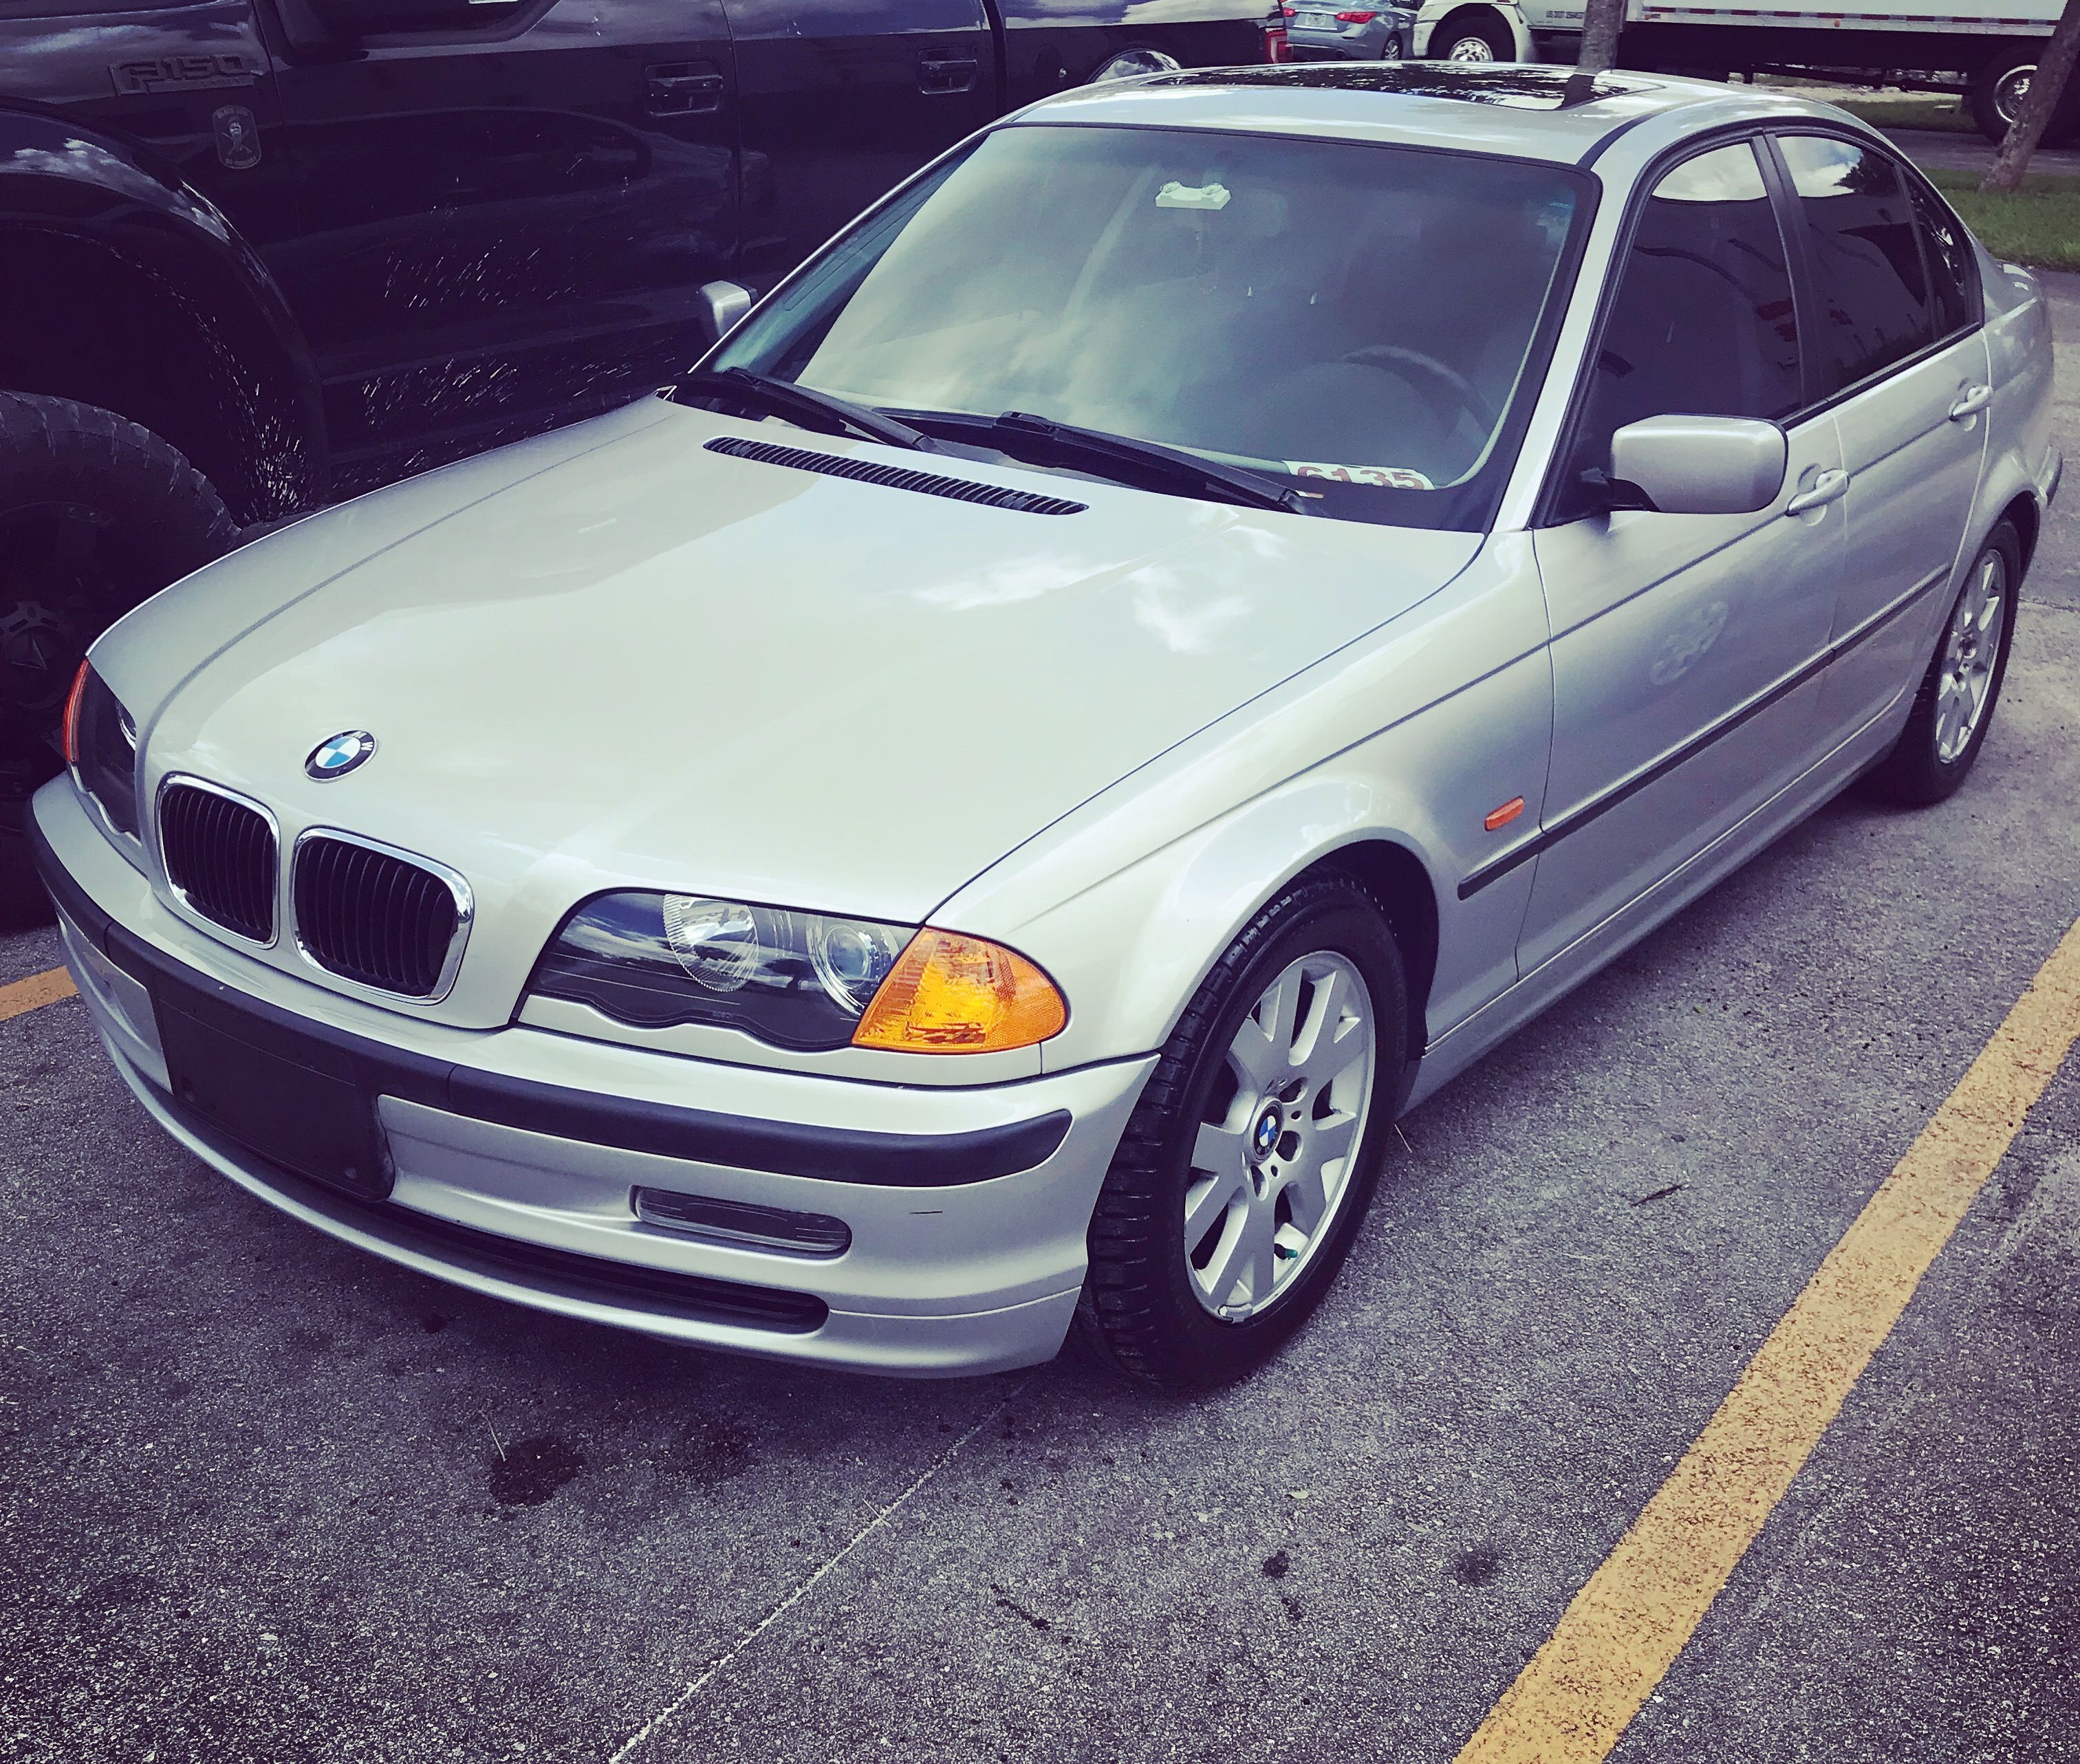 washed and ready to turn in 2000 bmw 323i to customer bmw bmw323i [ 3024 x 2565 Pixel ]